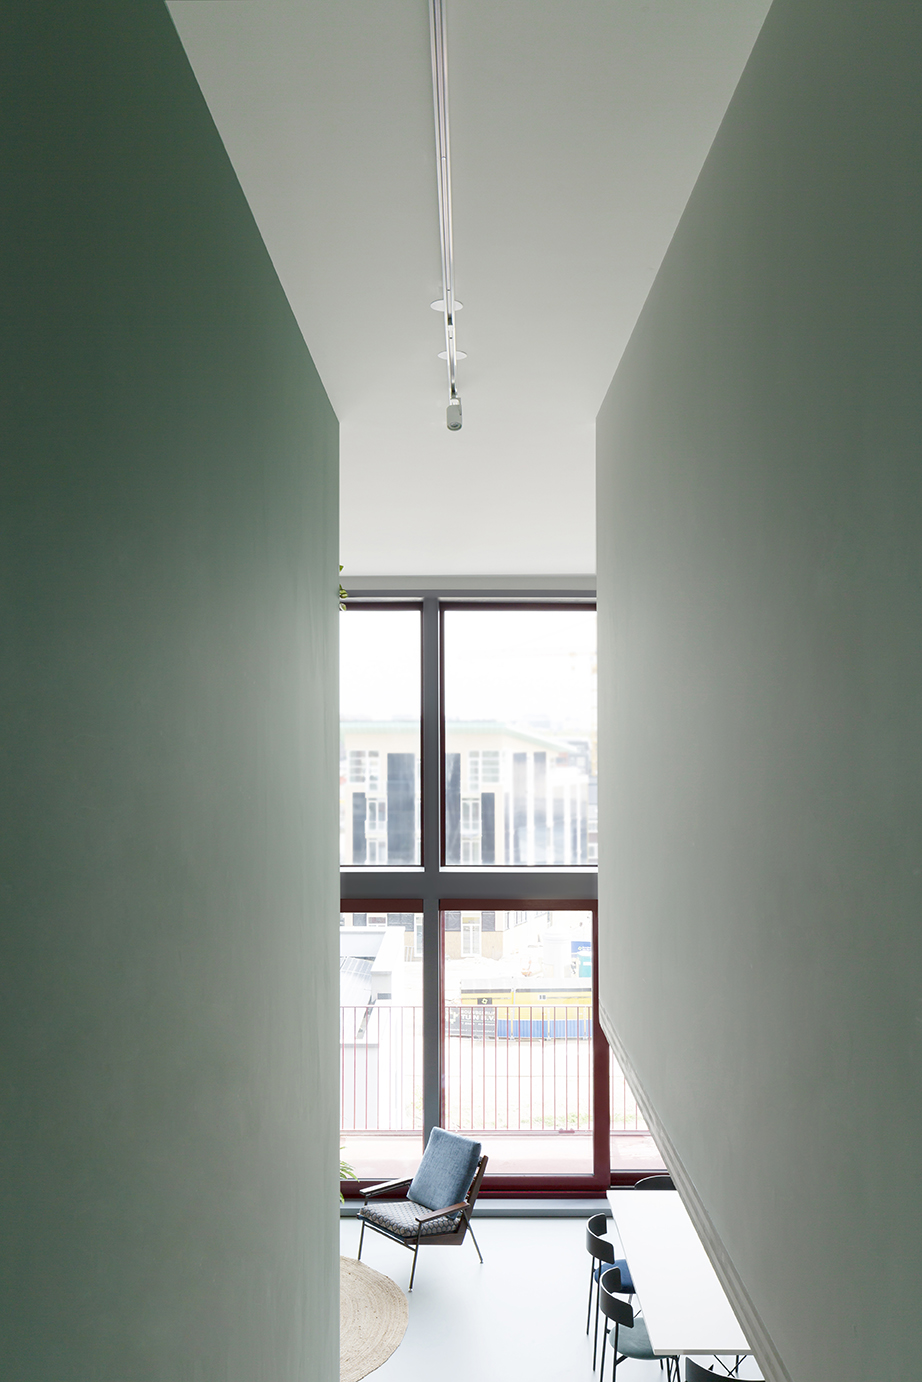 <p>Superlofts door studiomfd. beeld Melanie Samat</p>